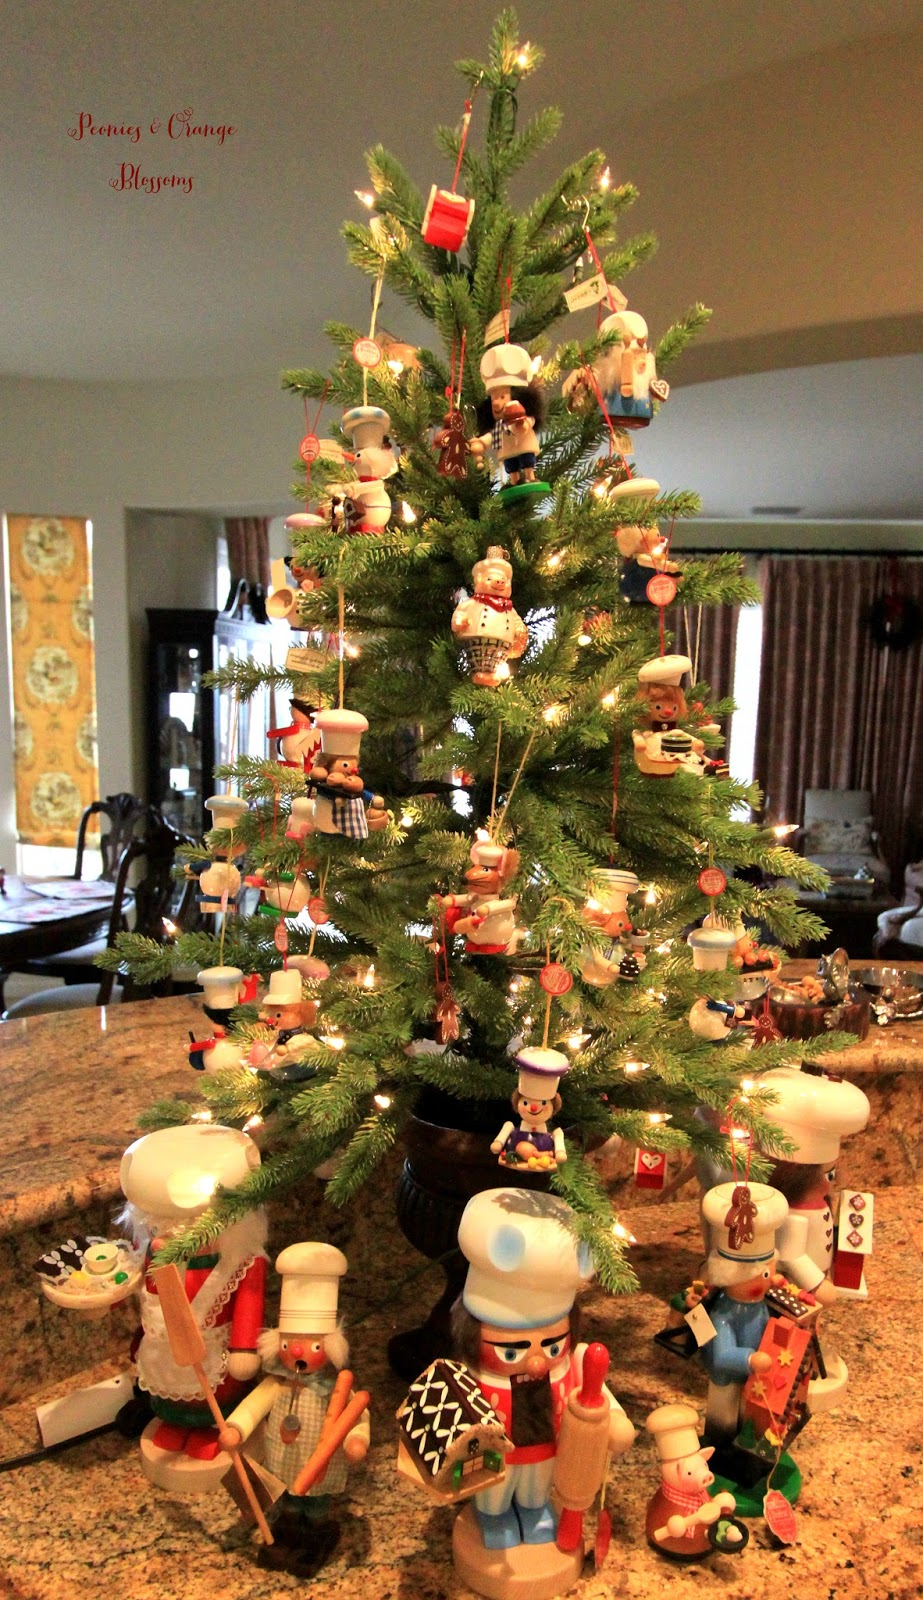 Kitchen Christmas Tree with Chef Ornaments! – Petite Haus